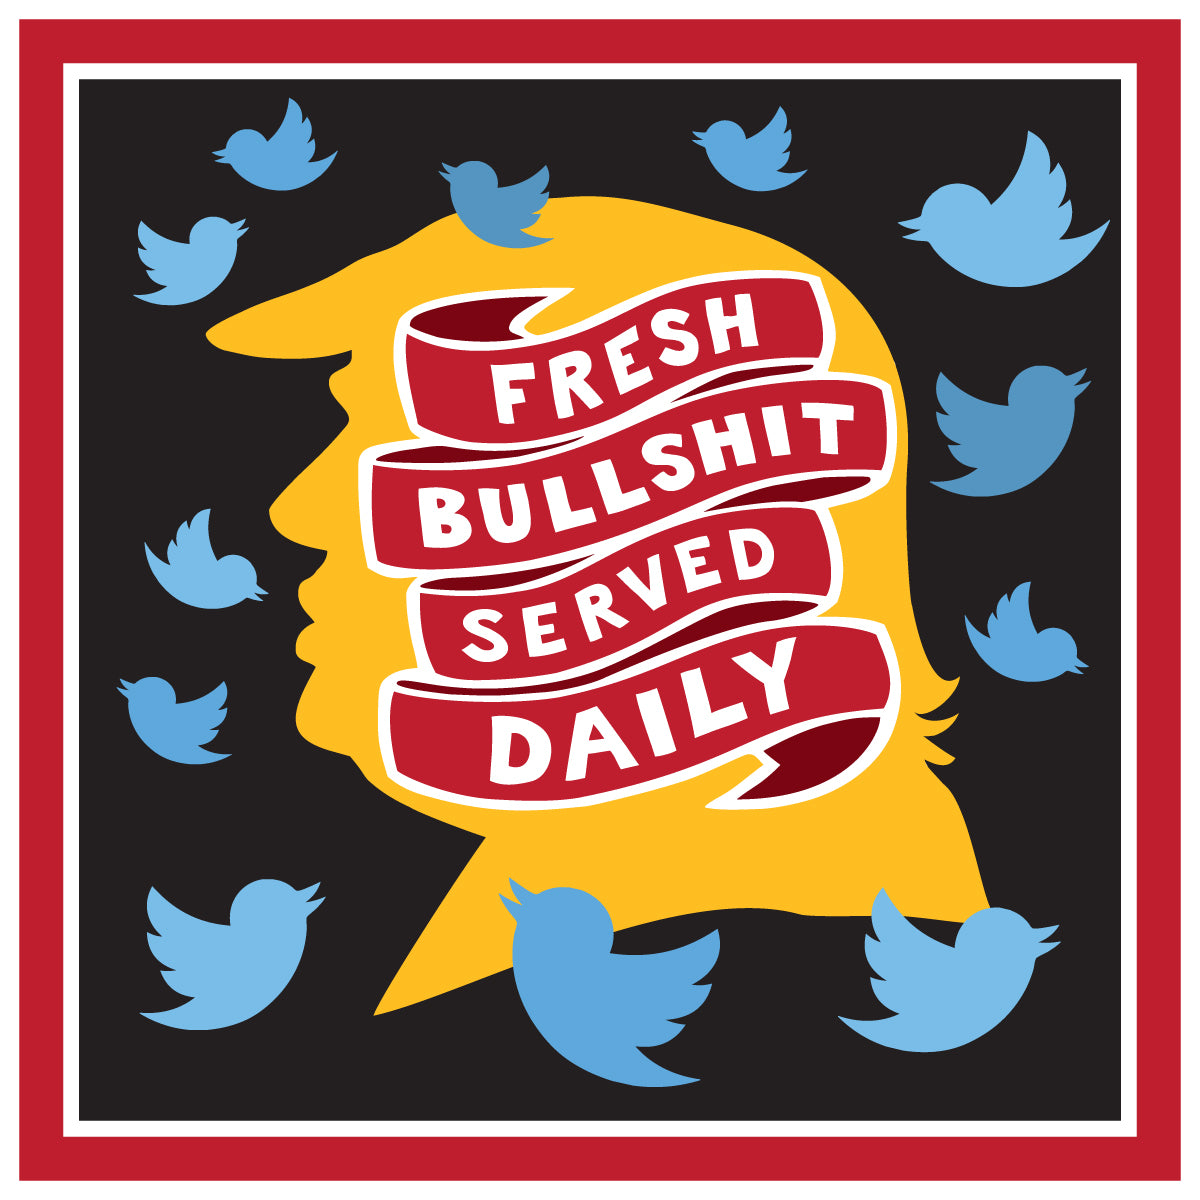 Fresh Bullshit served daily - sticker